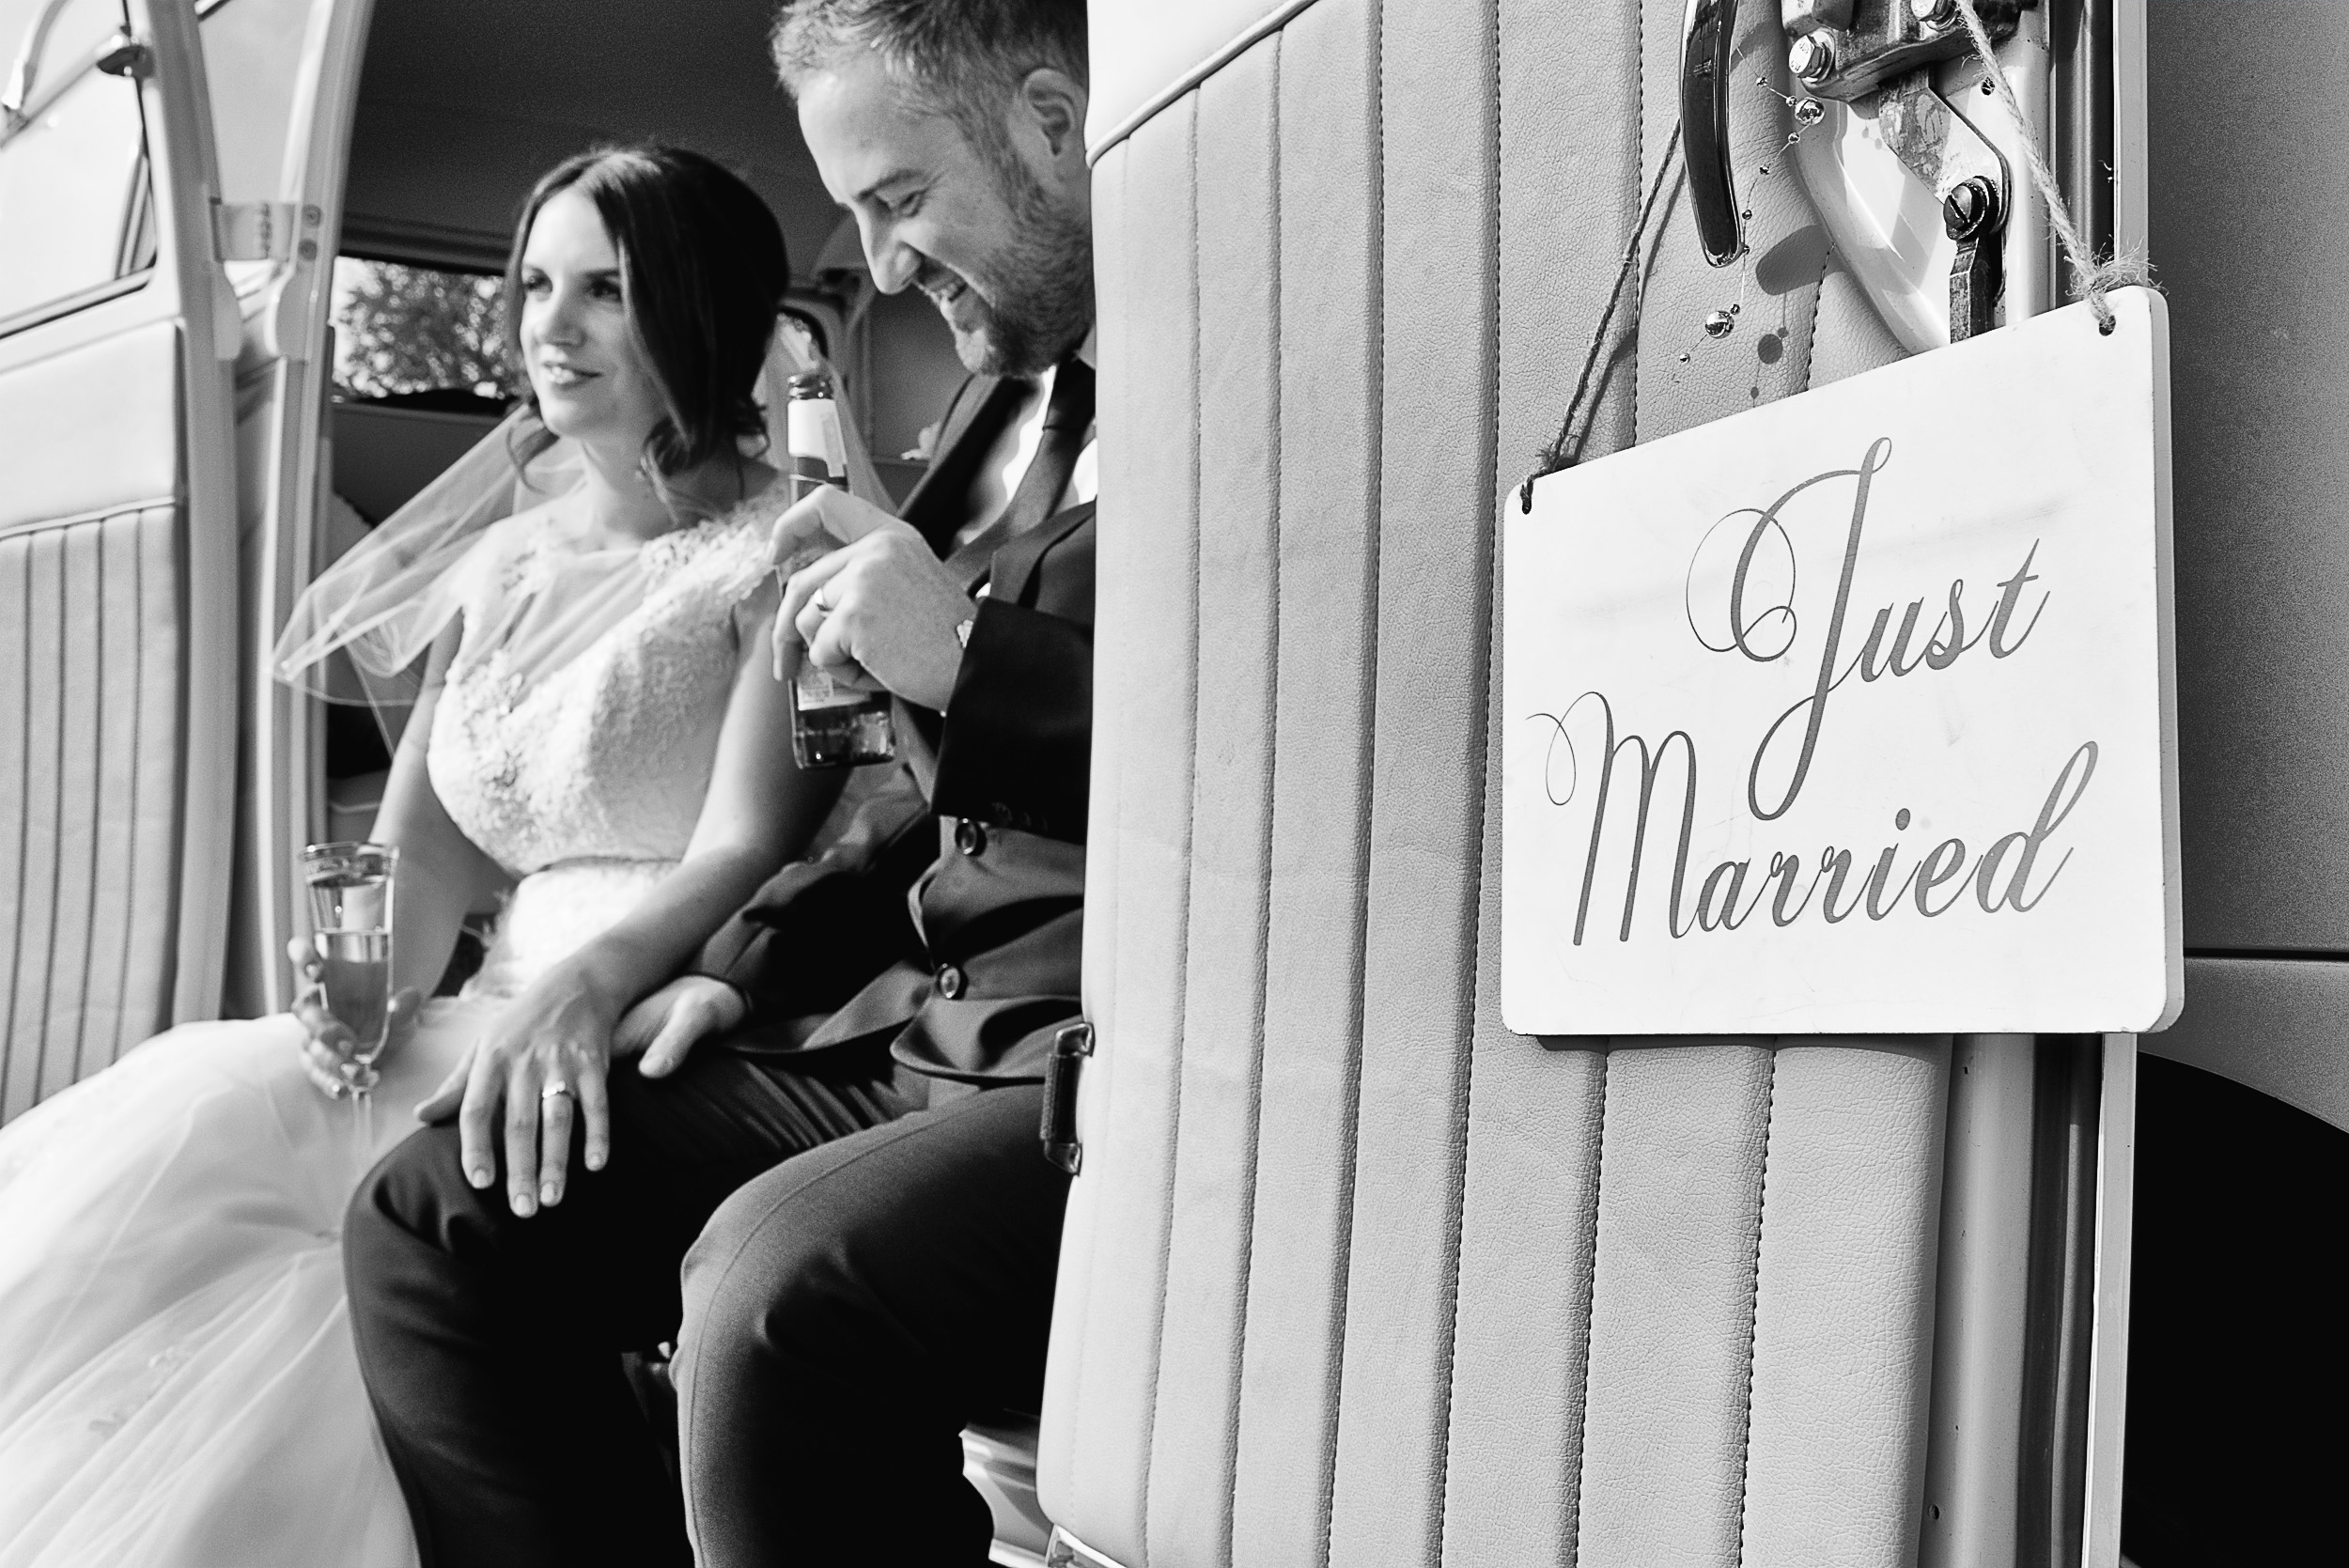 From in the moment wedding photography through to relaxed portraits I will photograph a wedding taking into account how you want the wedding to be remembered in images